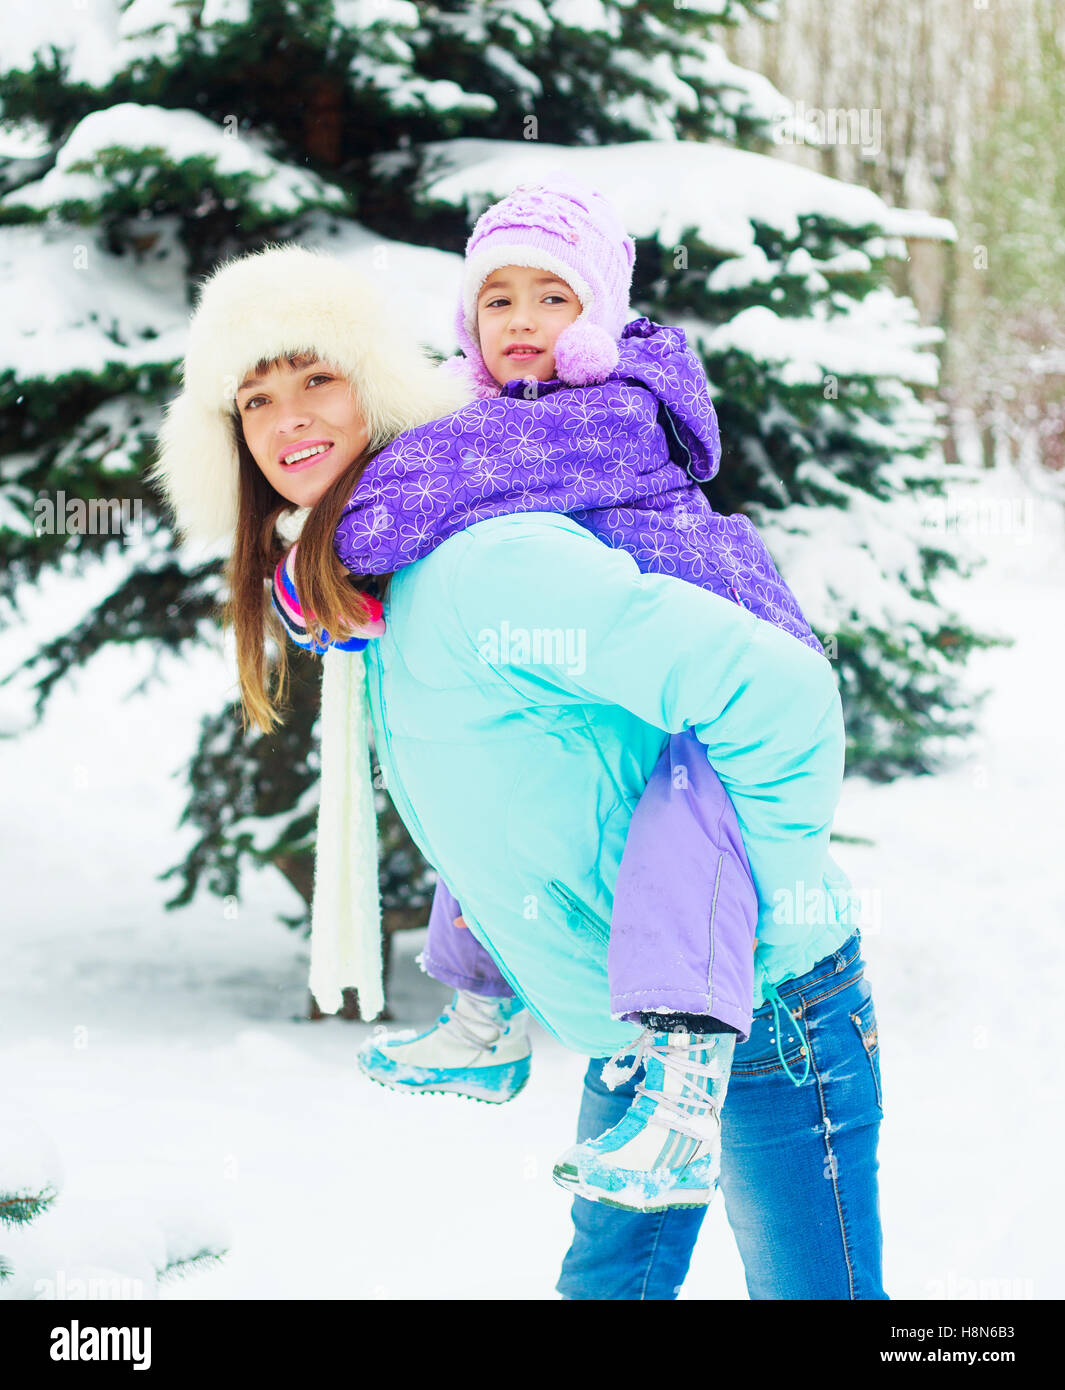 happy mother and daughter in the winter park - Stock Image